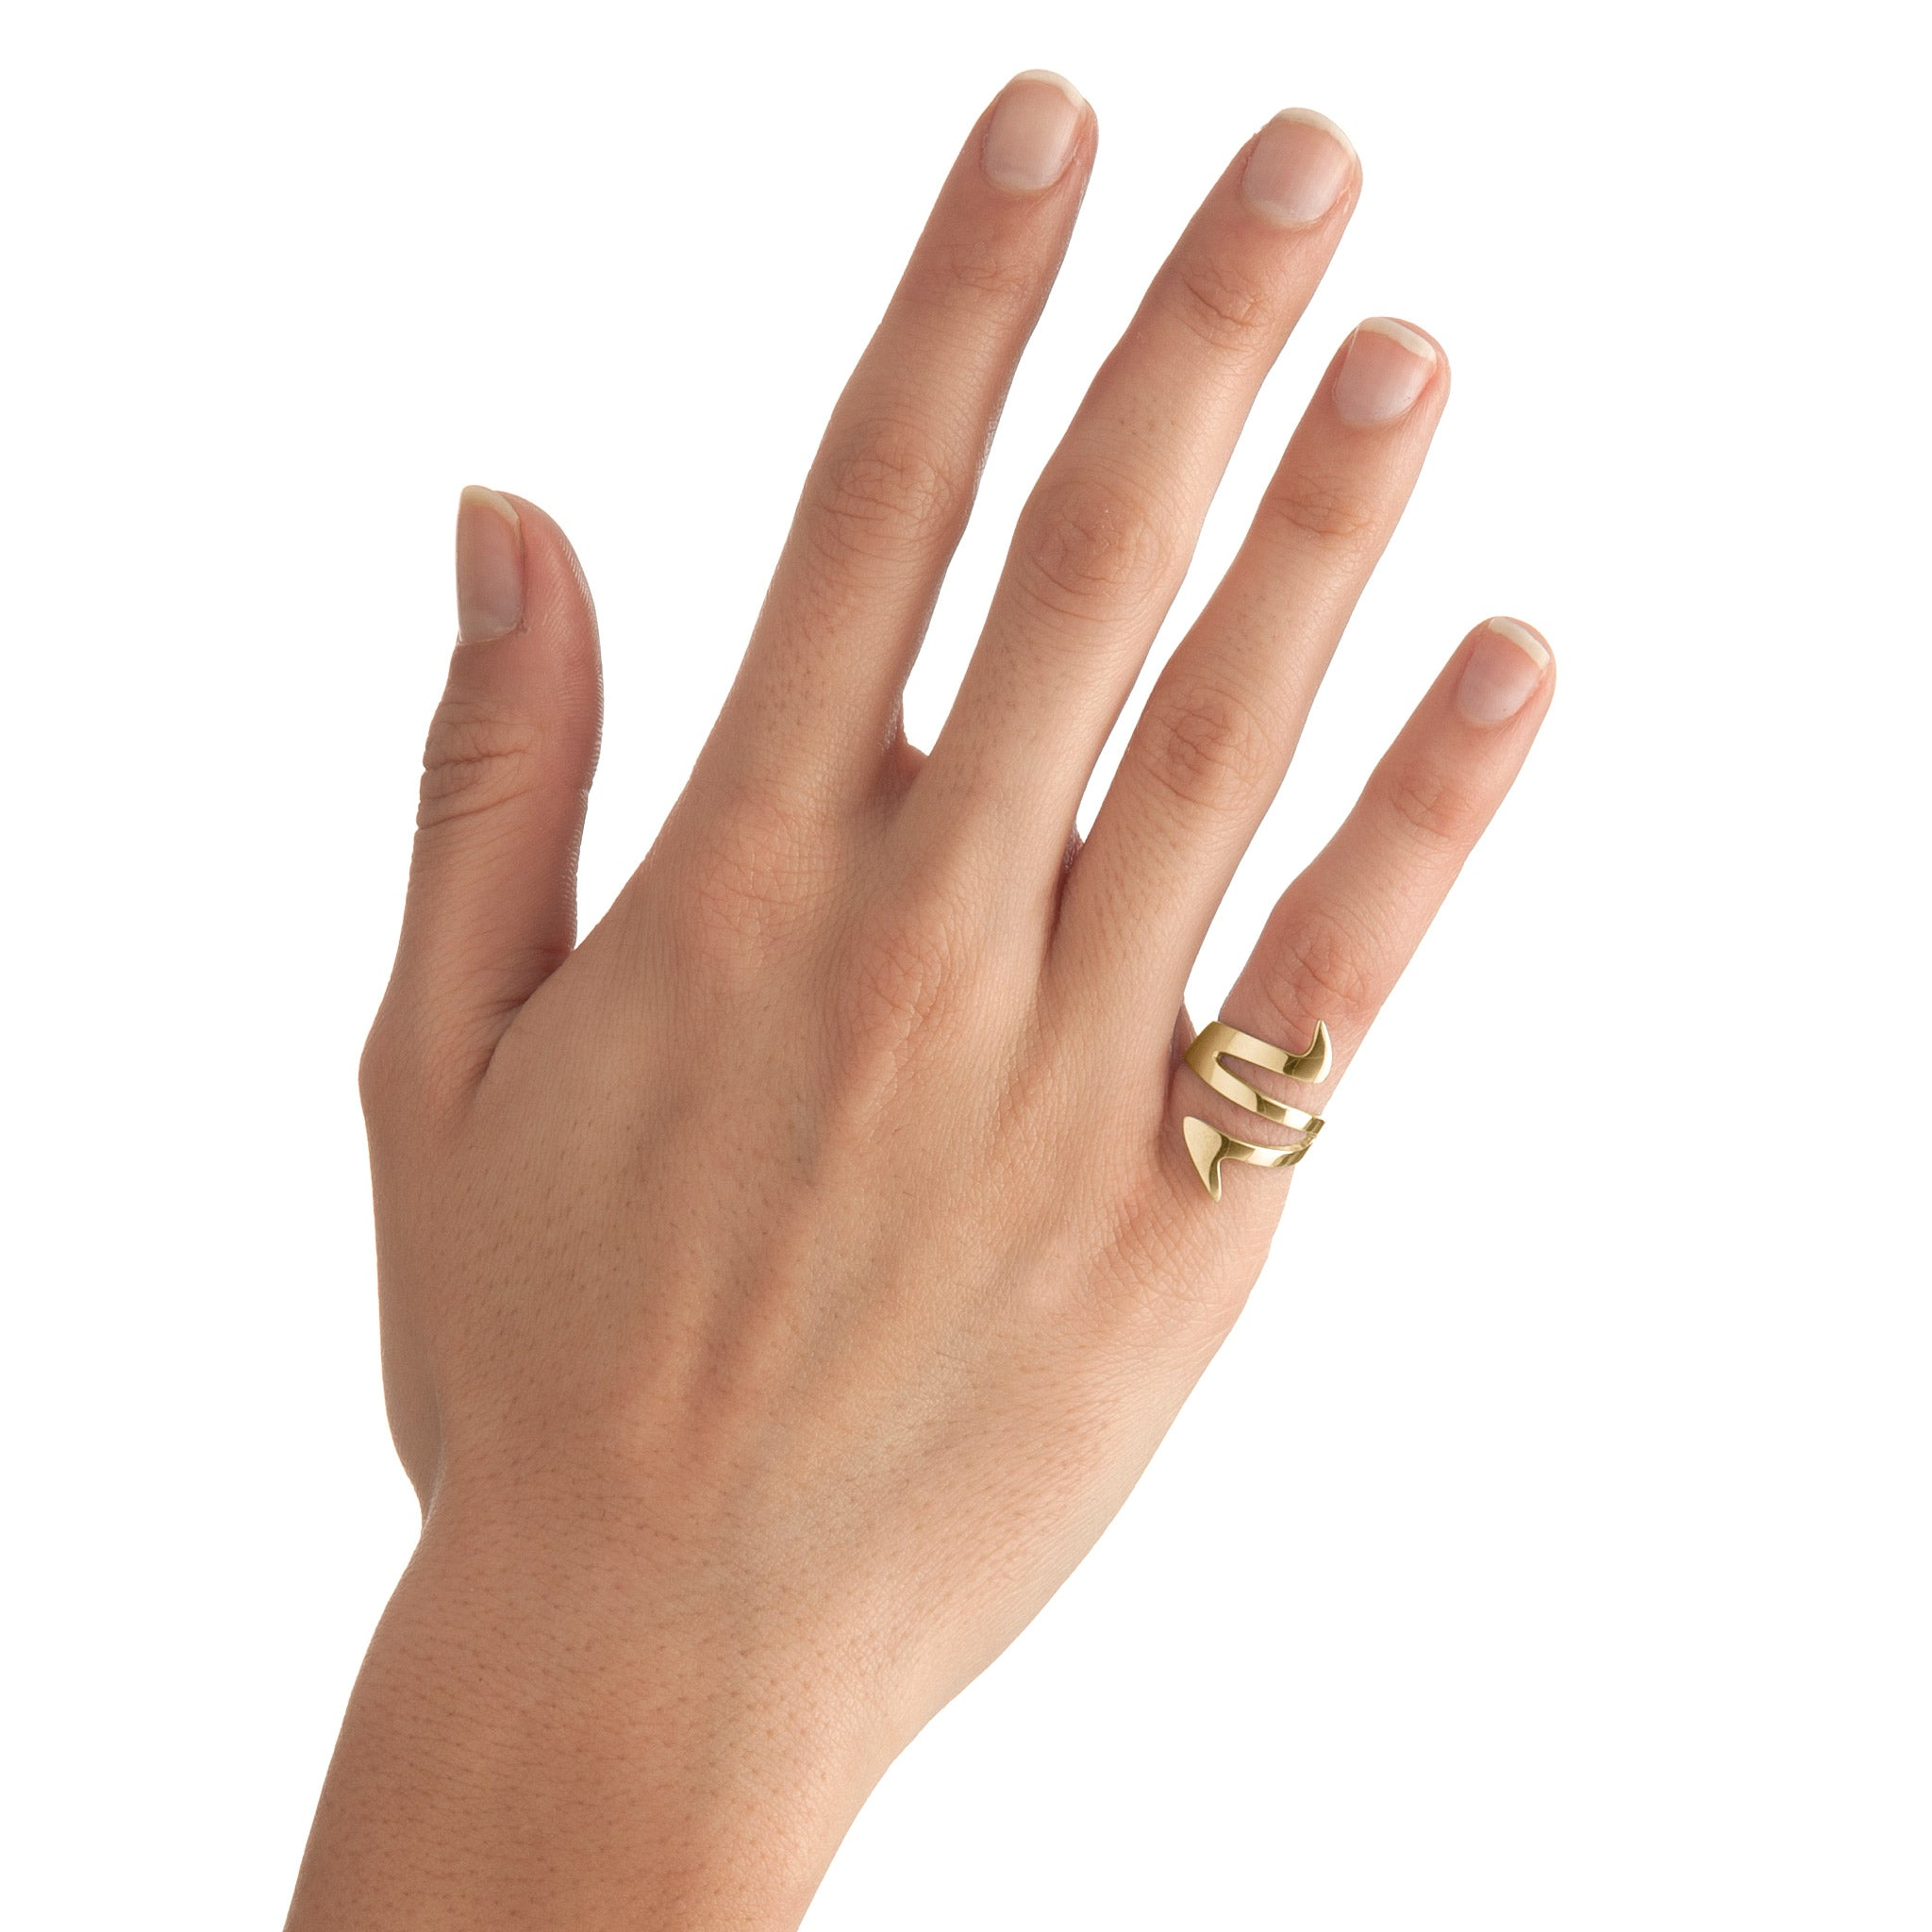 Ziggy Sterling Silver Midi Ring for women in yellow gold